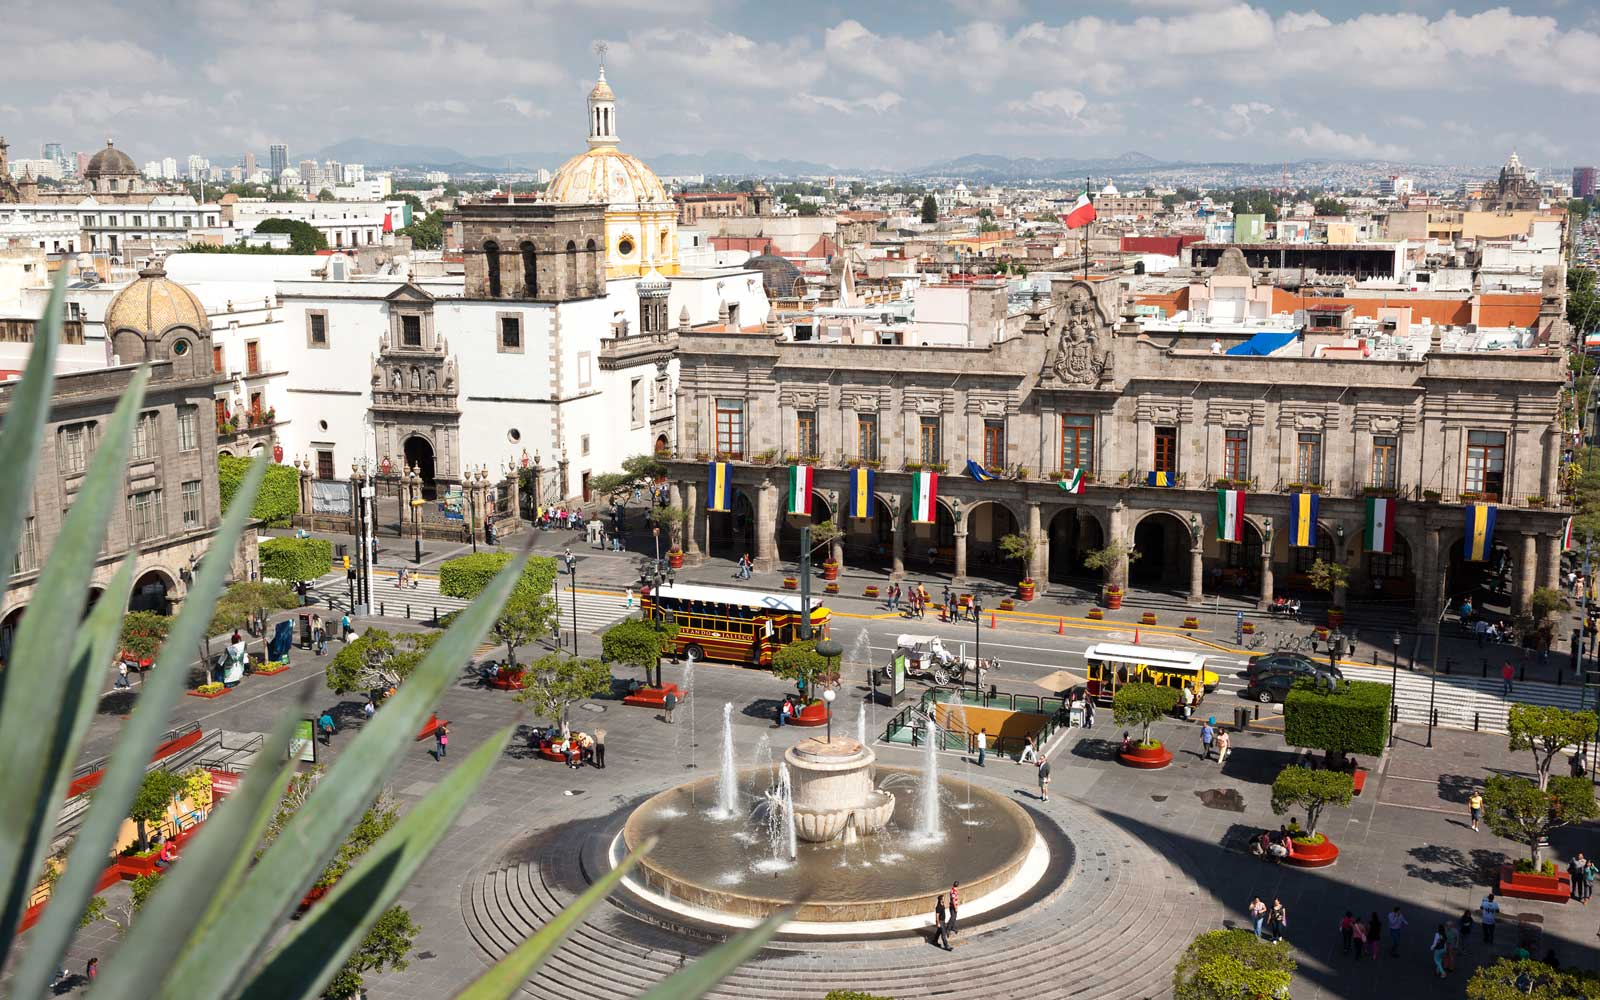 Guadalajara's Main Square, the Plaza de Armas and La Merced church.